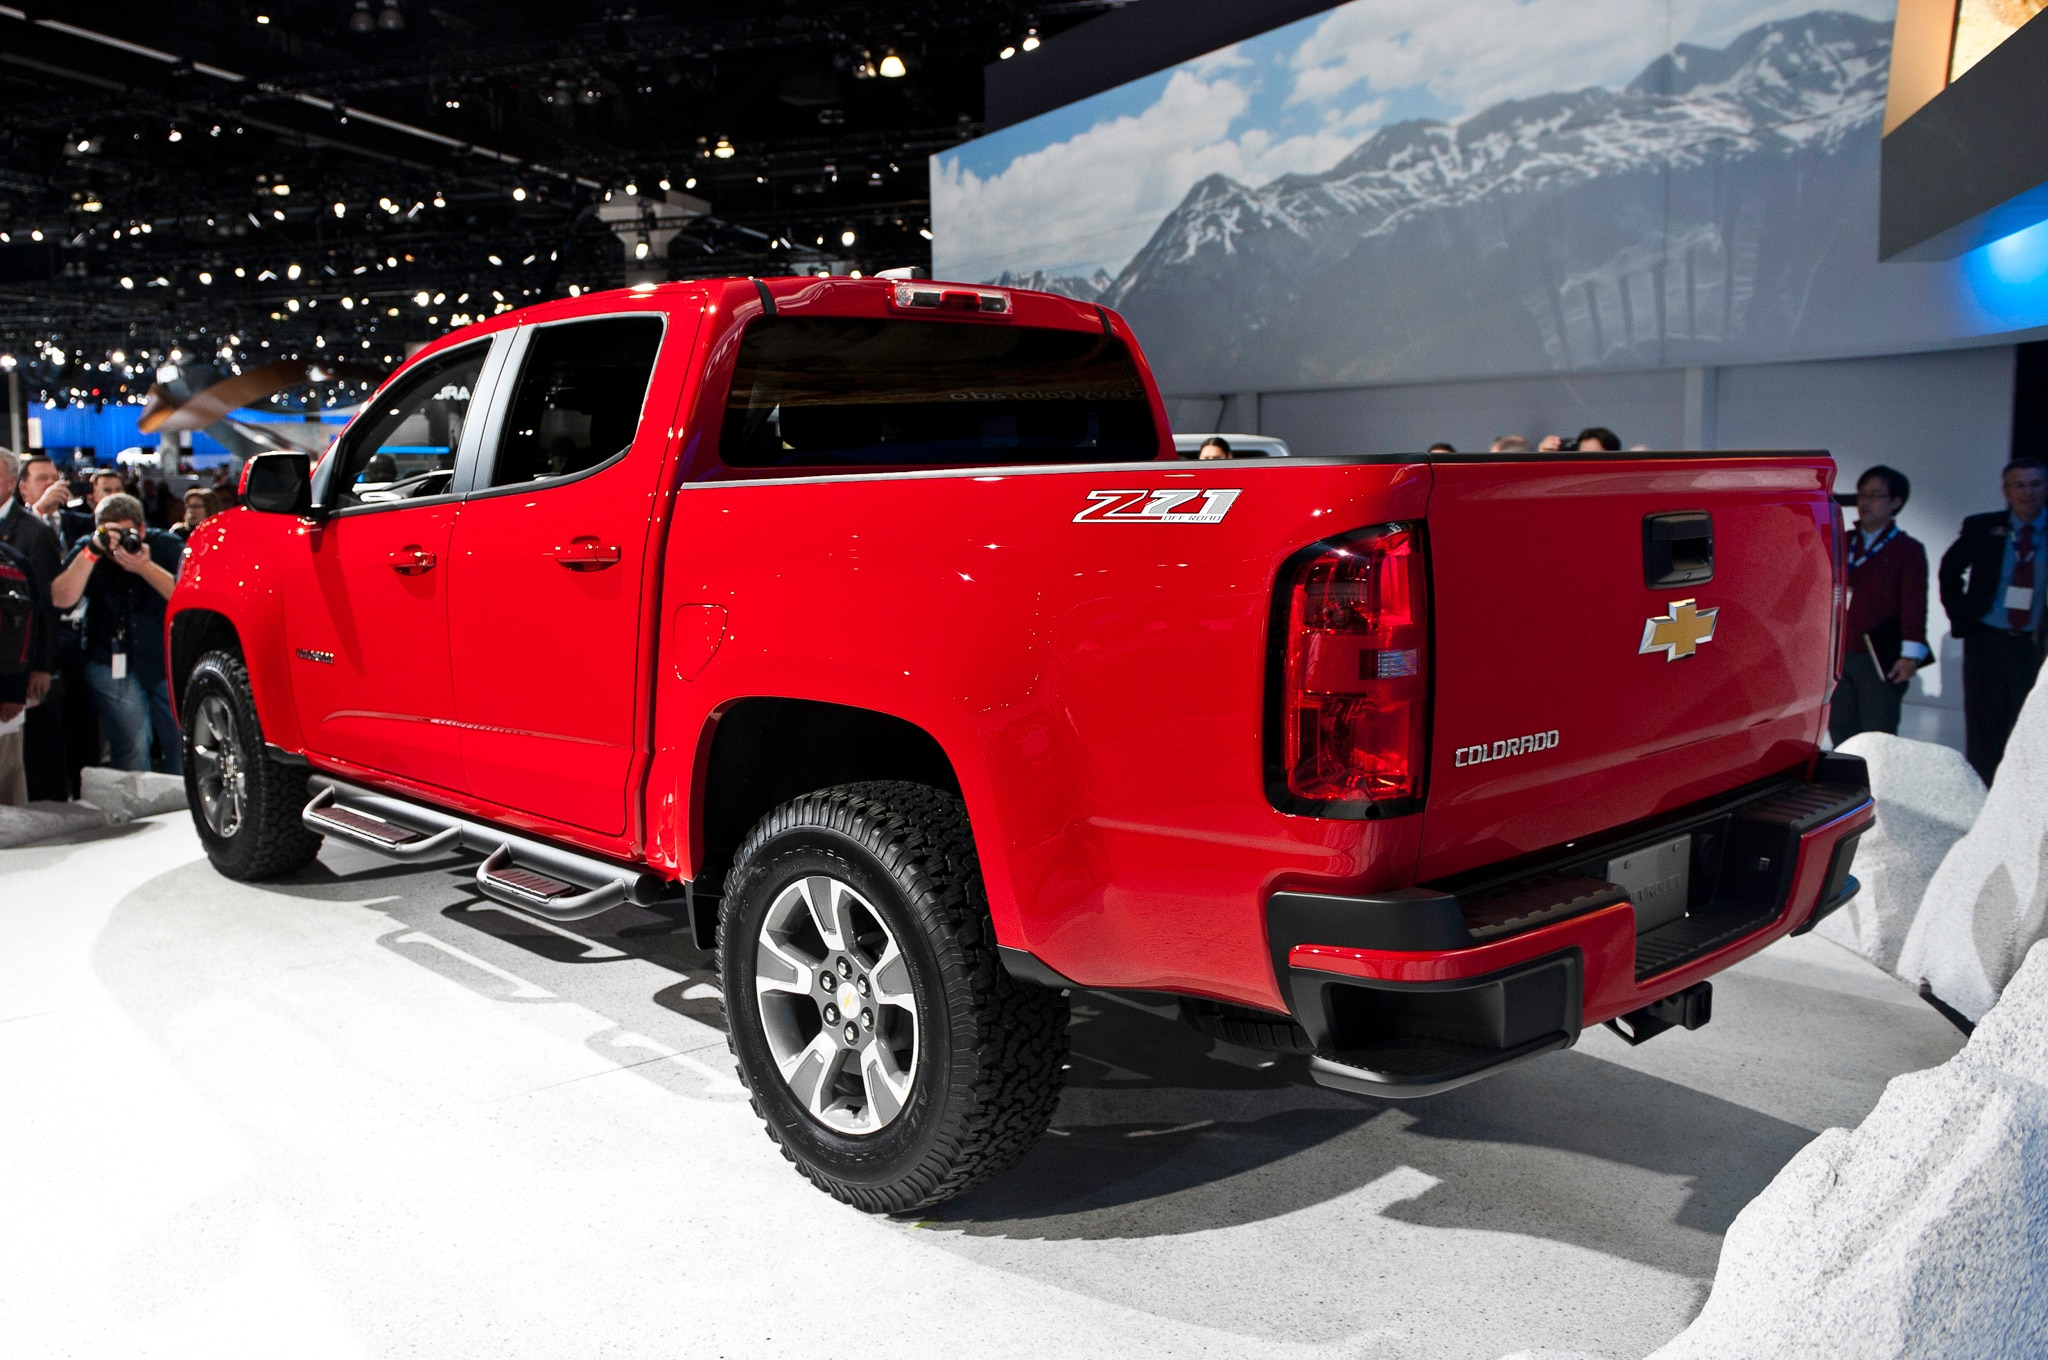 2015 Chevrolet Colorado rear